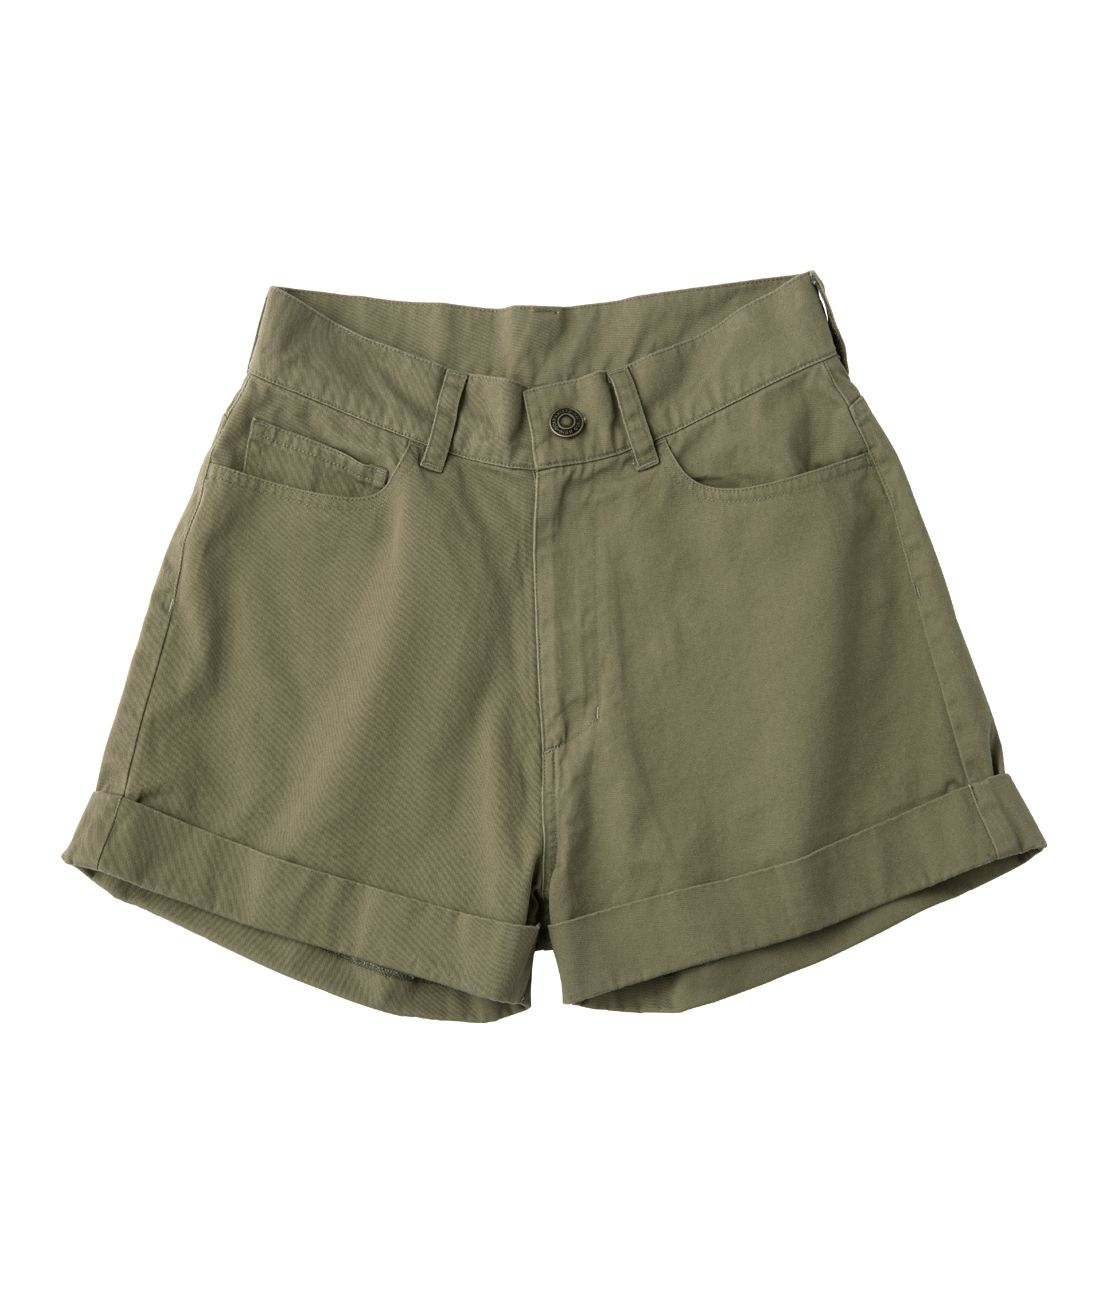 Rollup short pants